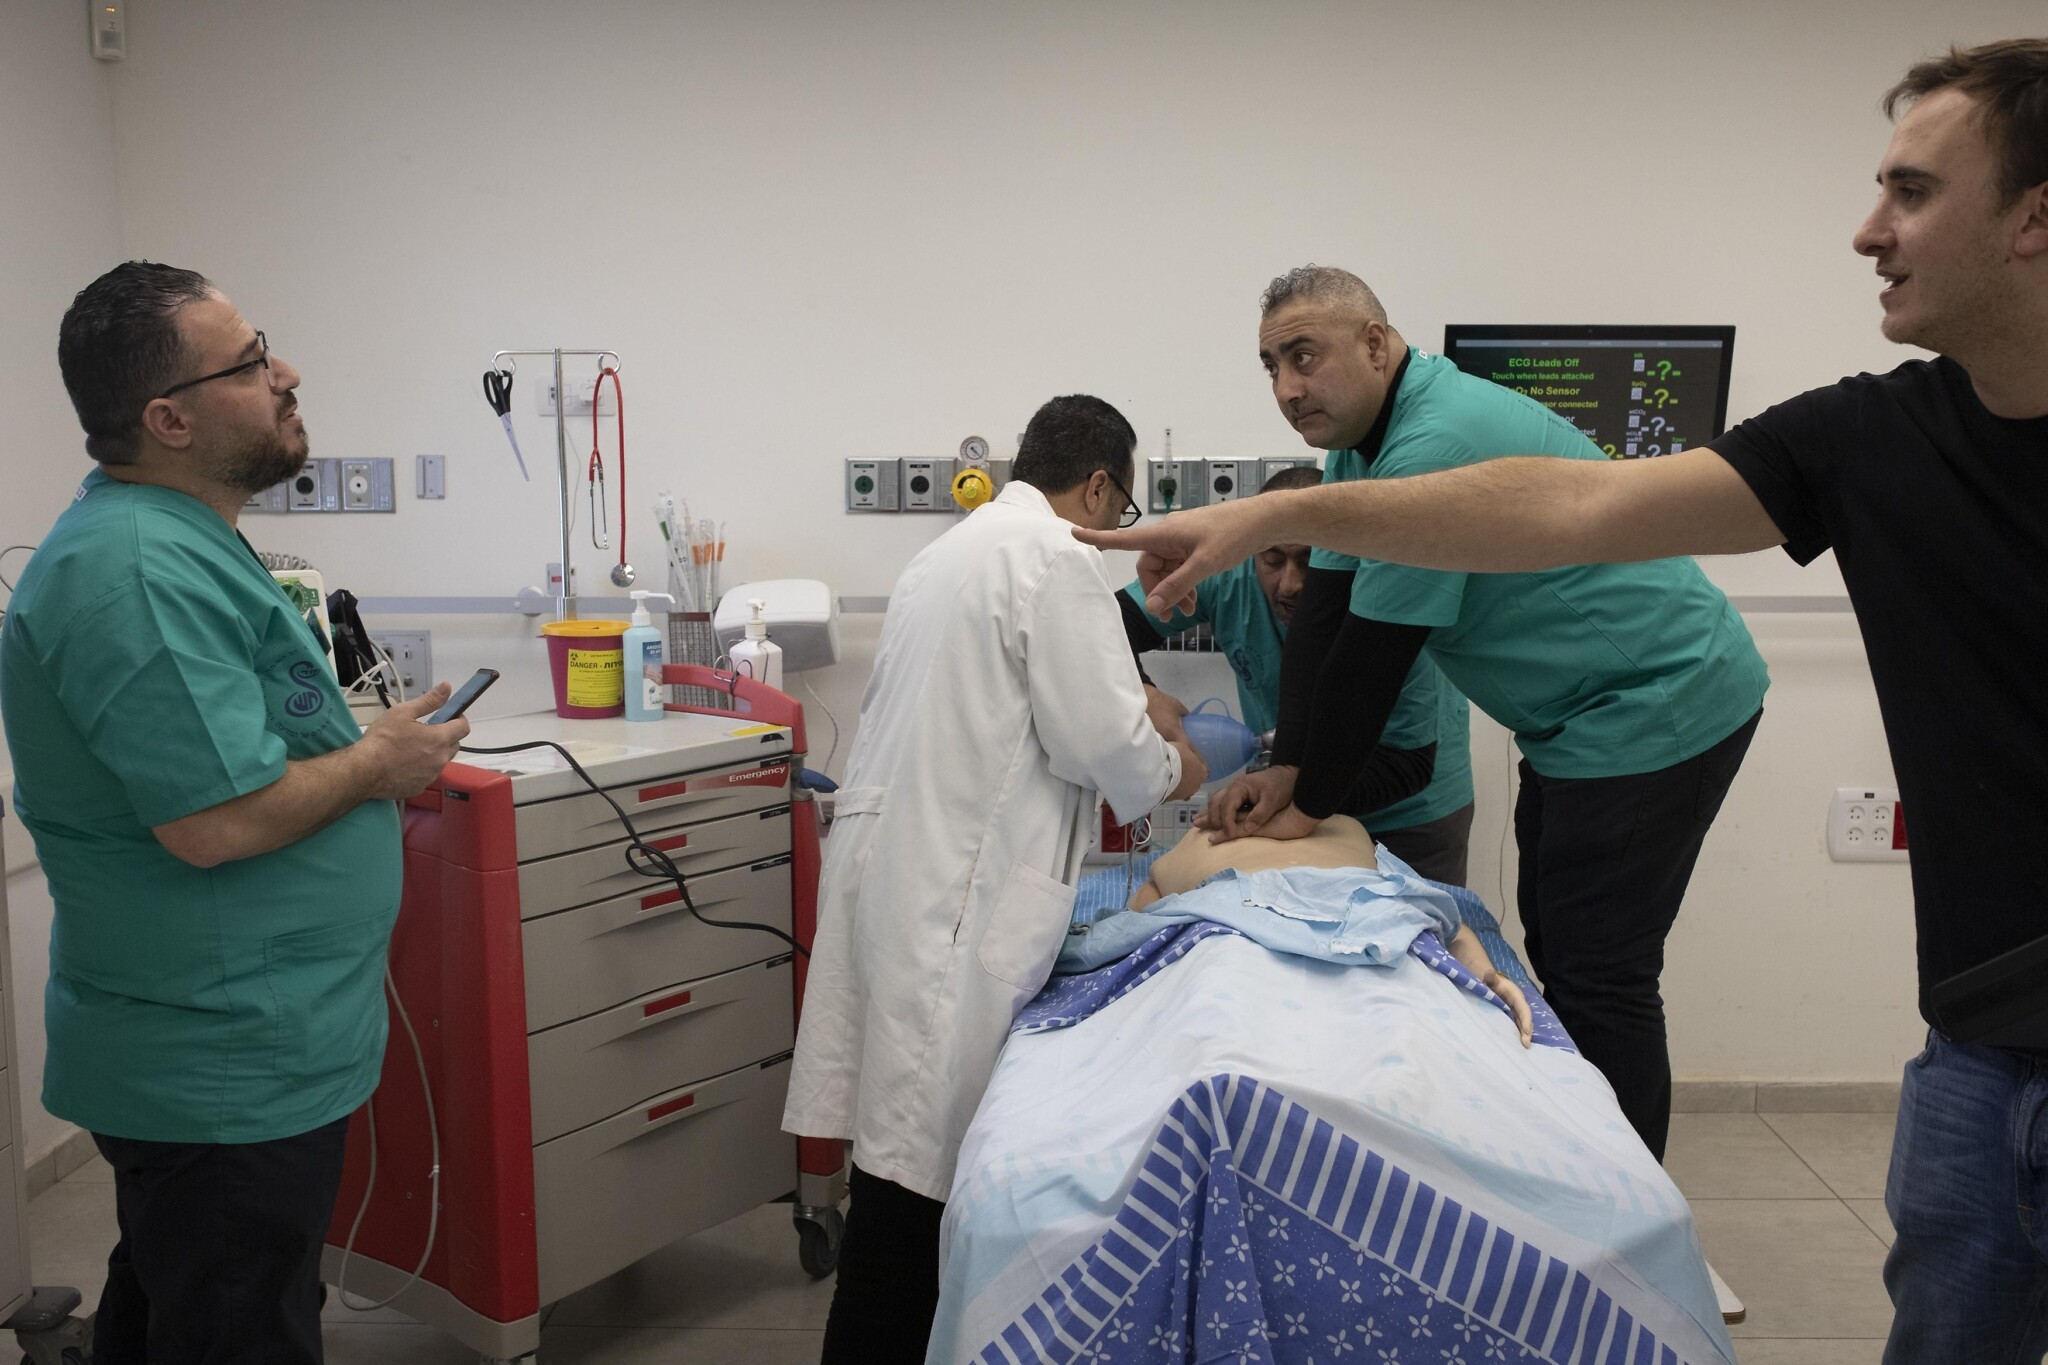 A group of Palestinian nurses from the West Bank and Gaza Strip taking part in a special four-day medical simulation course at the Sheba Medical Center at Tel Hashomer in Ramat Gan on January 1, 2020. (Oren Ziv/Activestills)